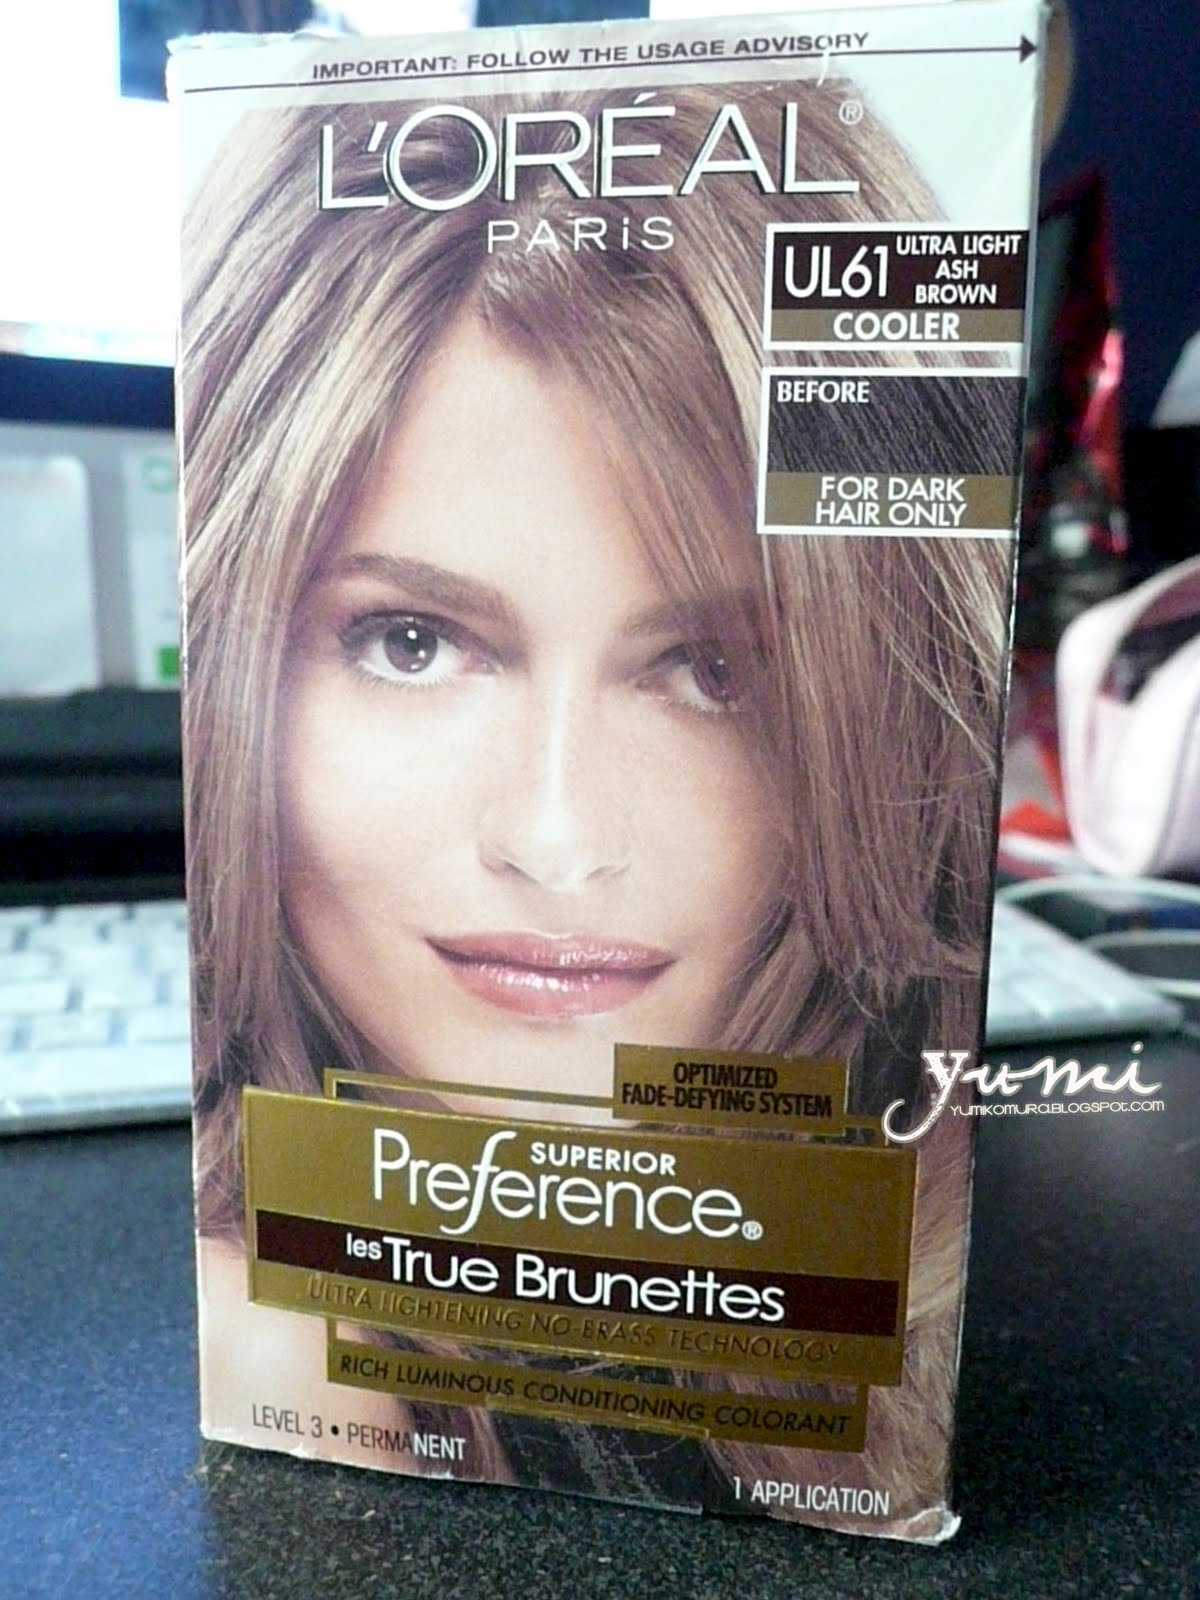 yumikos blog loreal les true brunettes ul61 ultra light